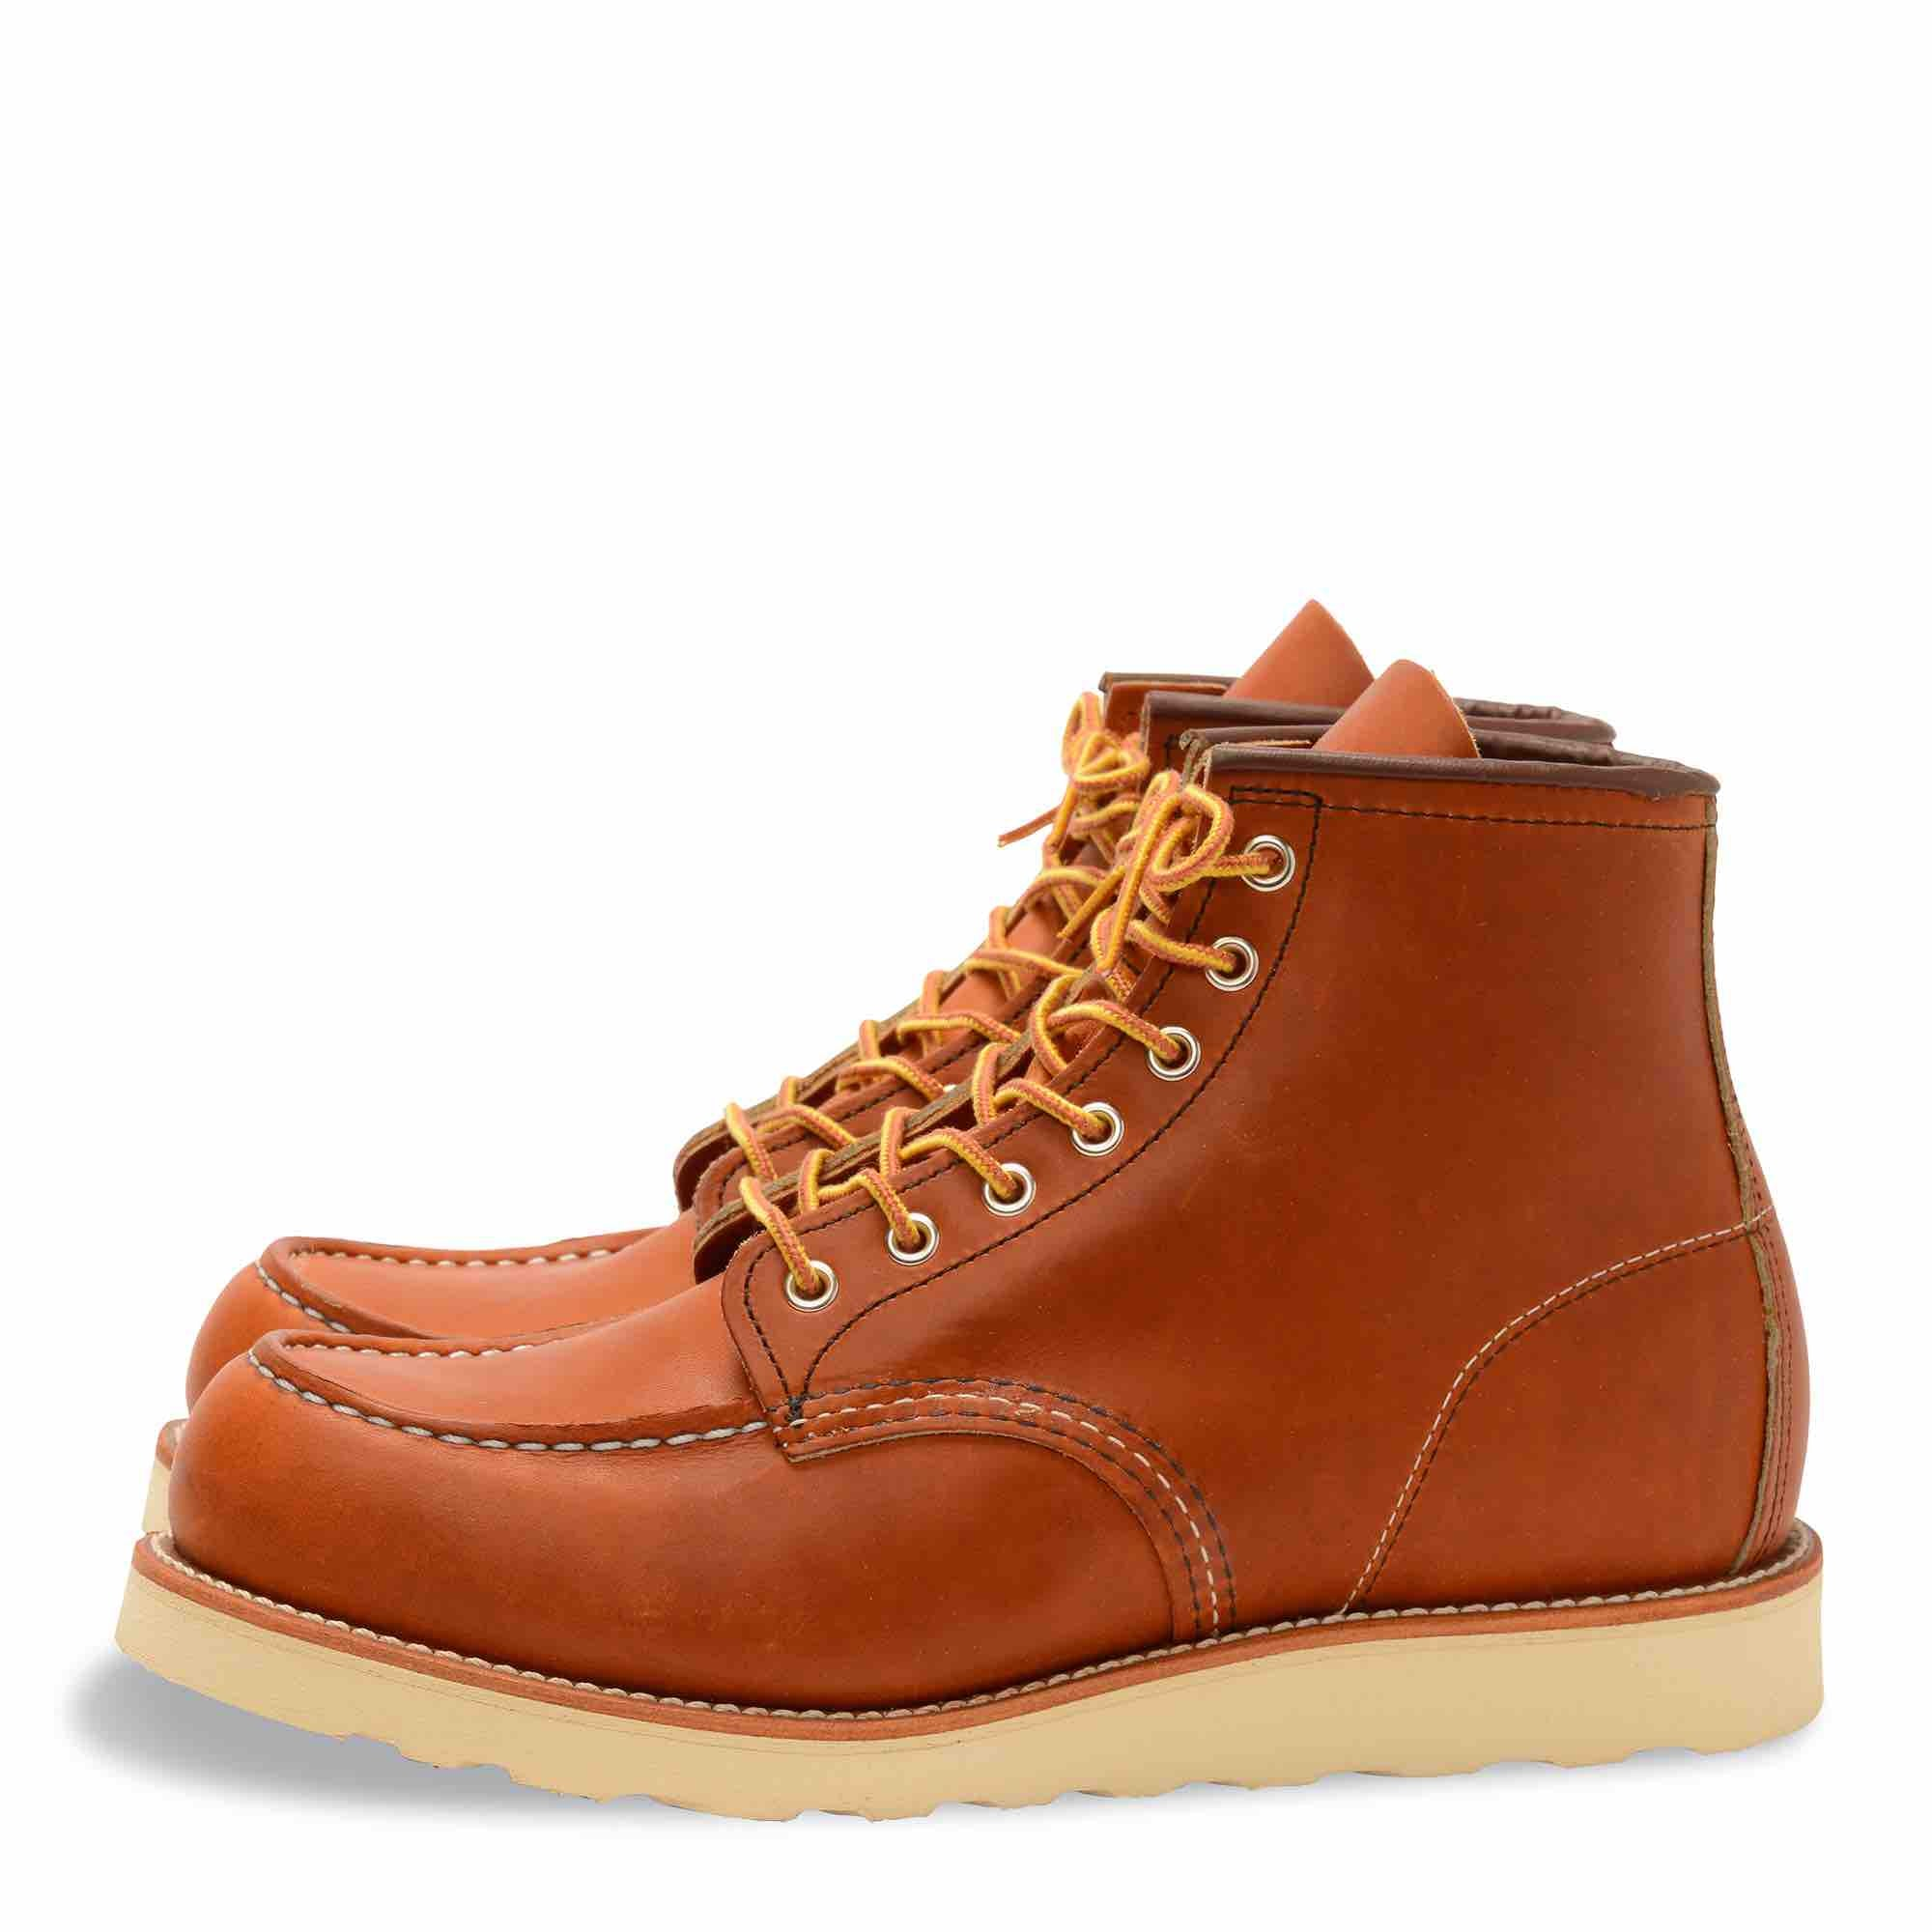 d4043369106 Red Wing - 875 - Classic Moc Toe (Oro Legacy) - Brund